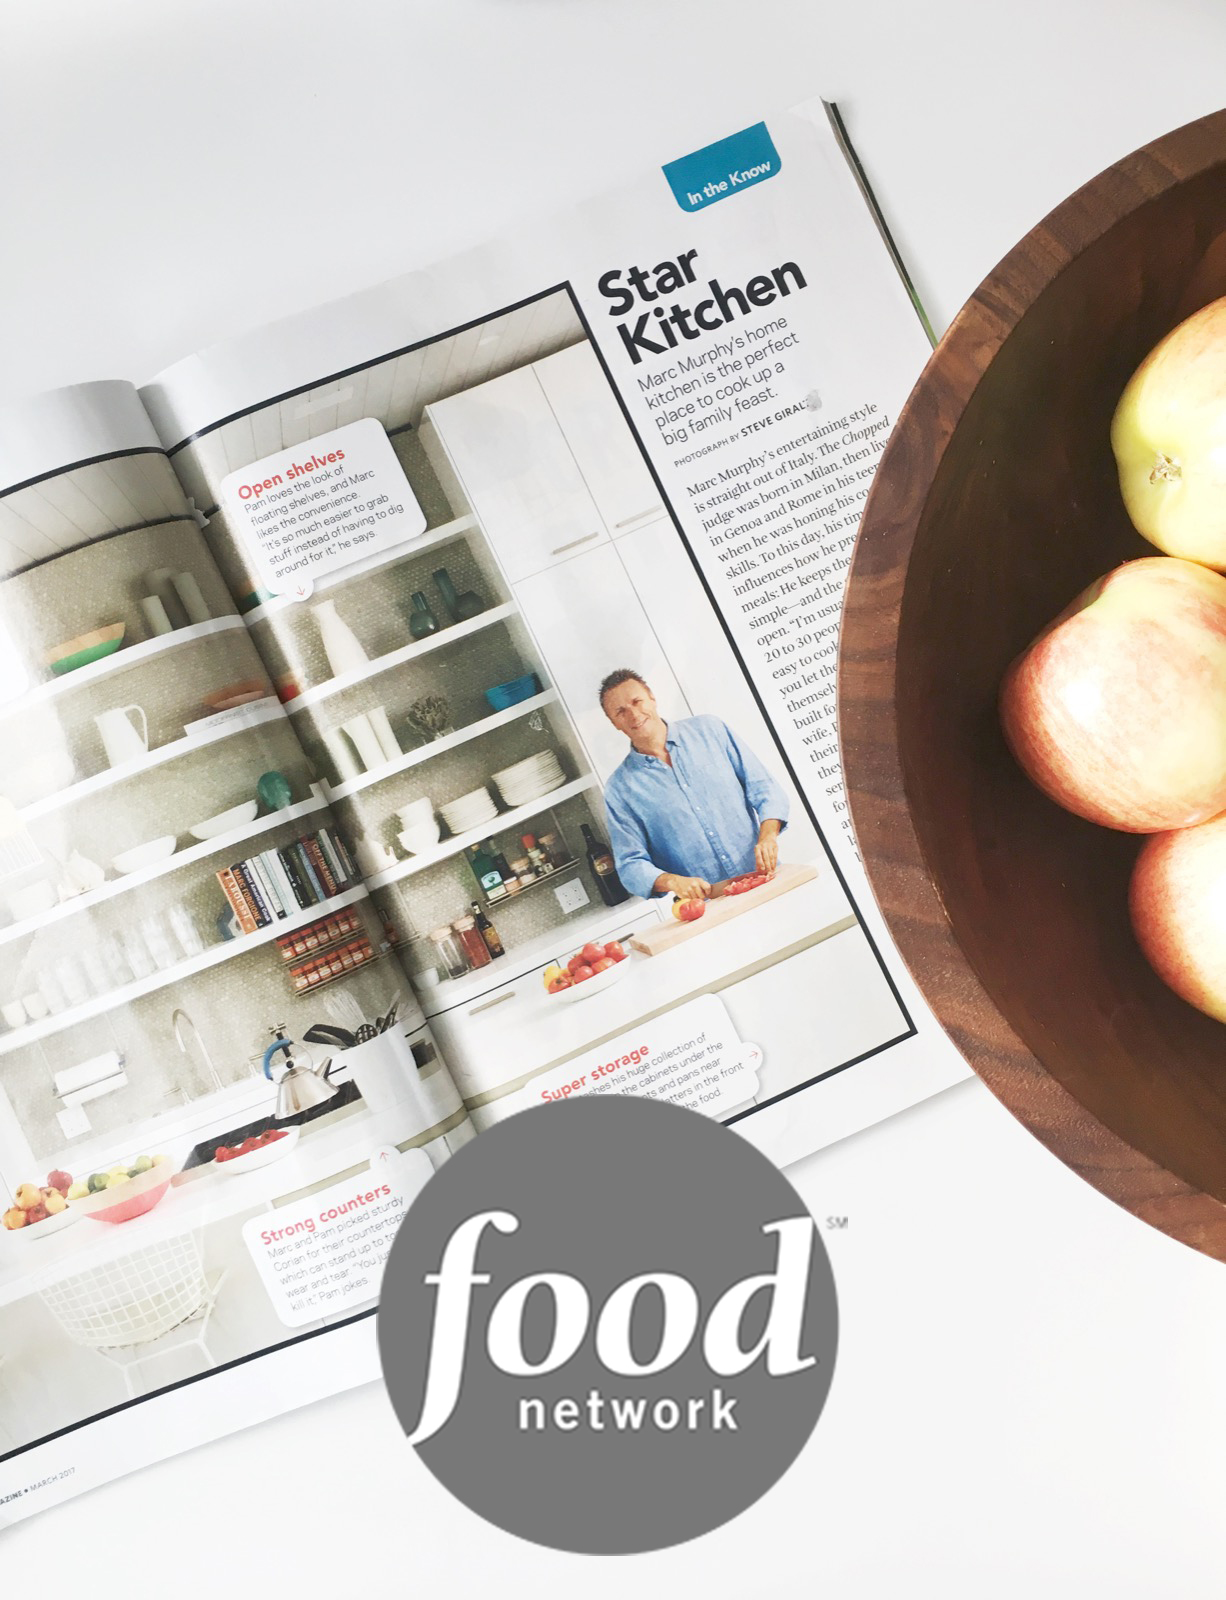 """Color Dipped bowls add pops of color to the open shelves."" In celebrity chef Marc Murphy's home kitchen. -FOOD NETWORK MAGAZINE March 2017"